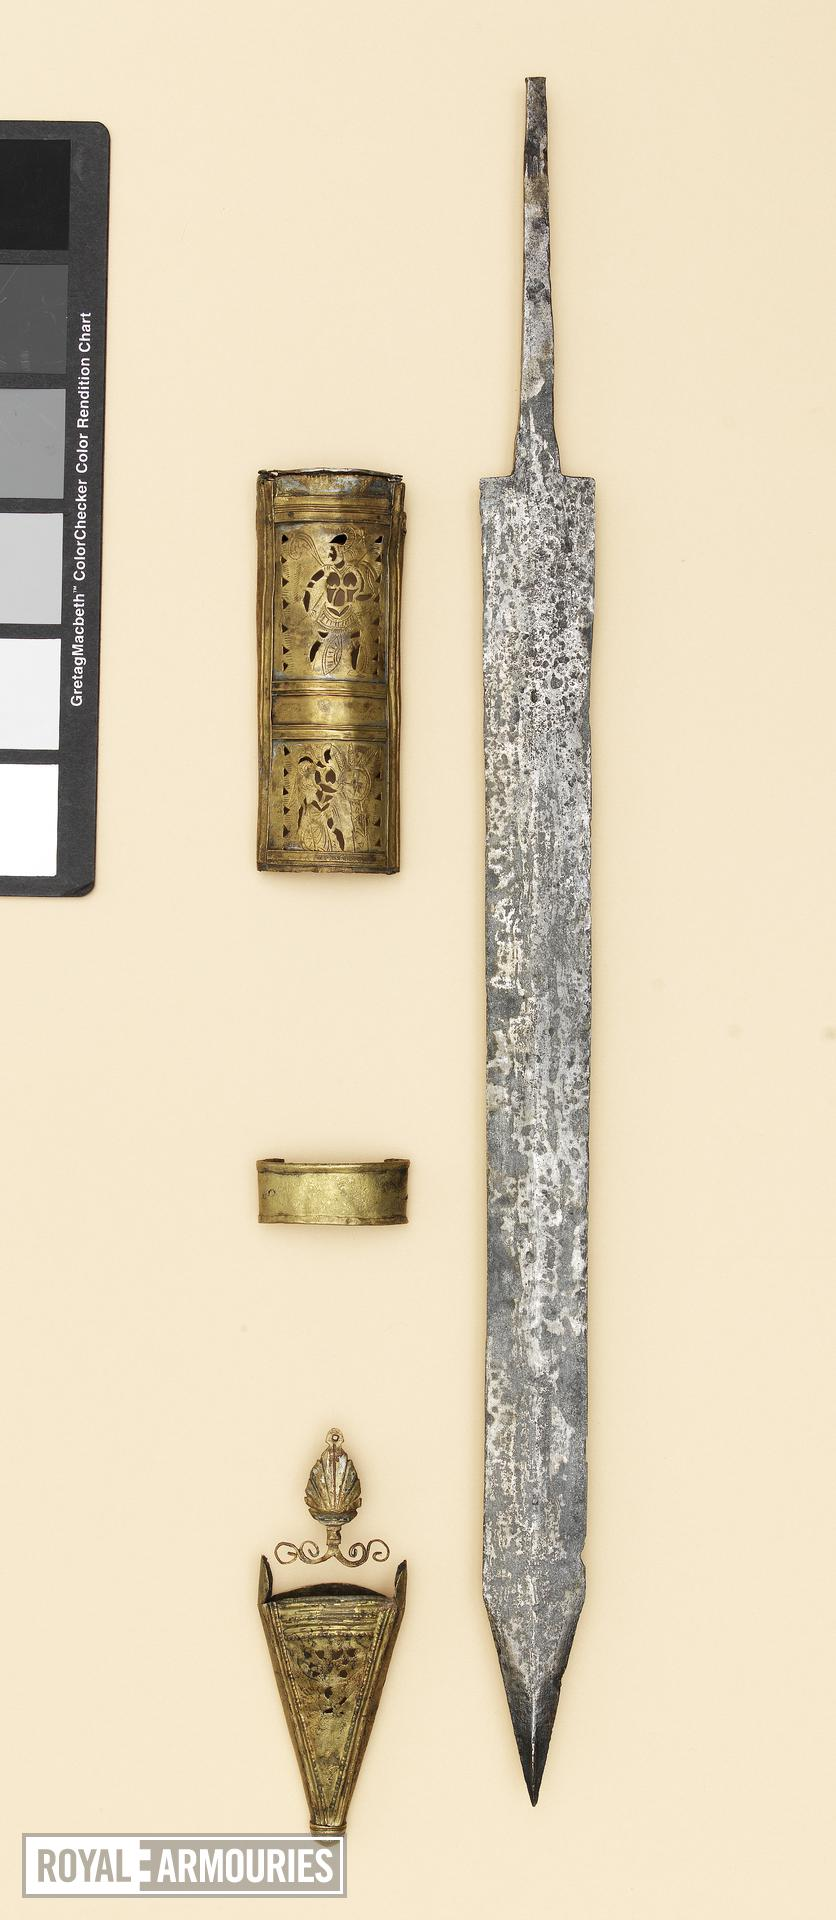 Gladius and scabbard mounts Gladius and scabbard mounts of the 'Pompeii type', from the Alex Guttmann Collection.